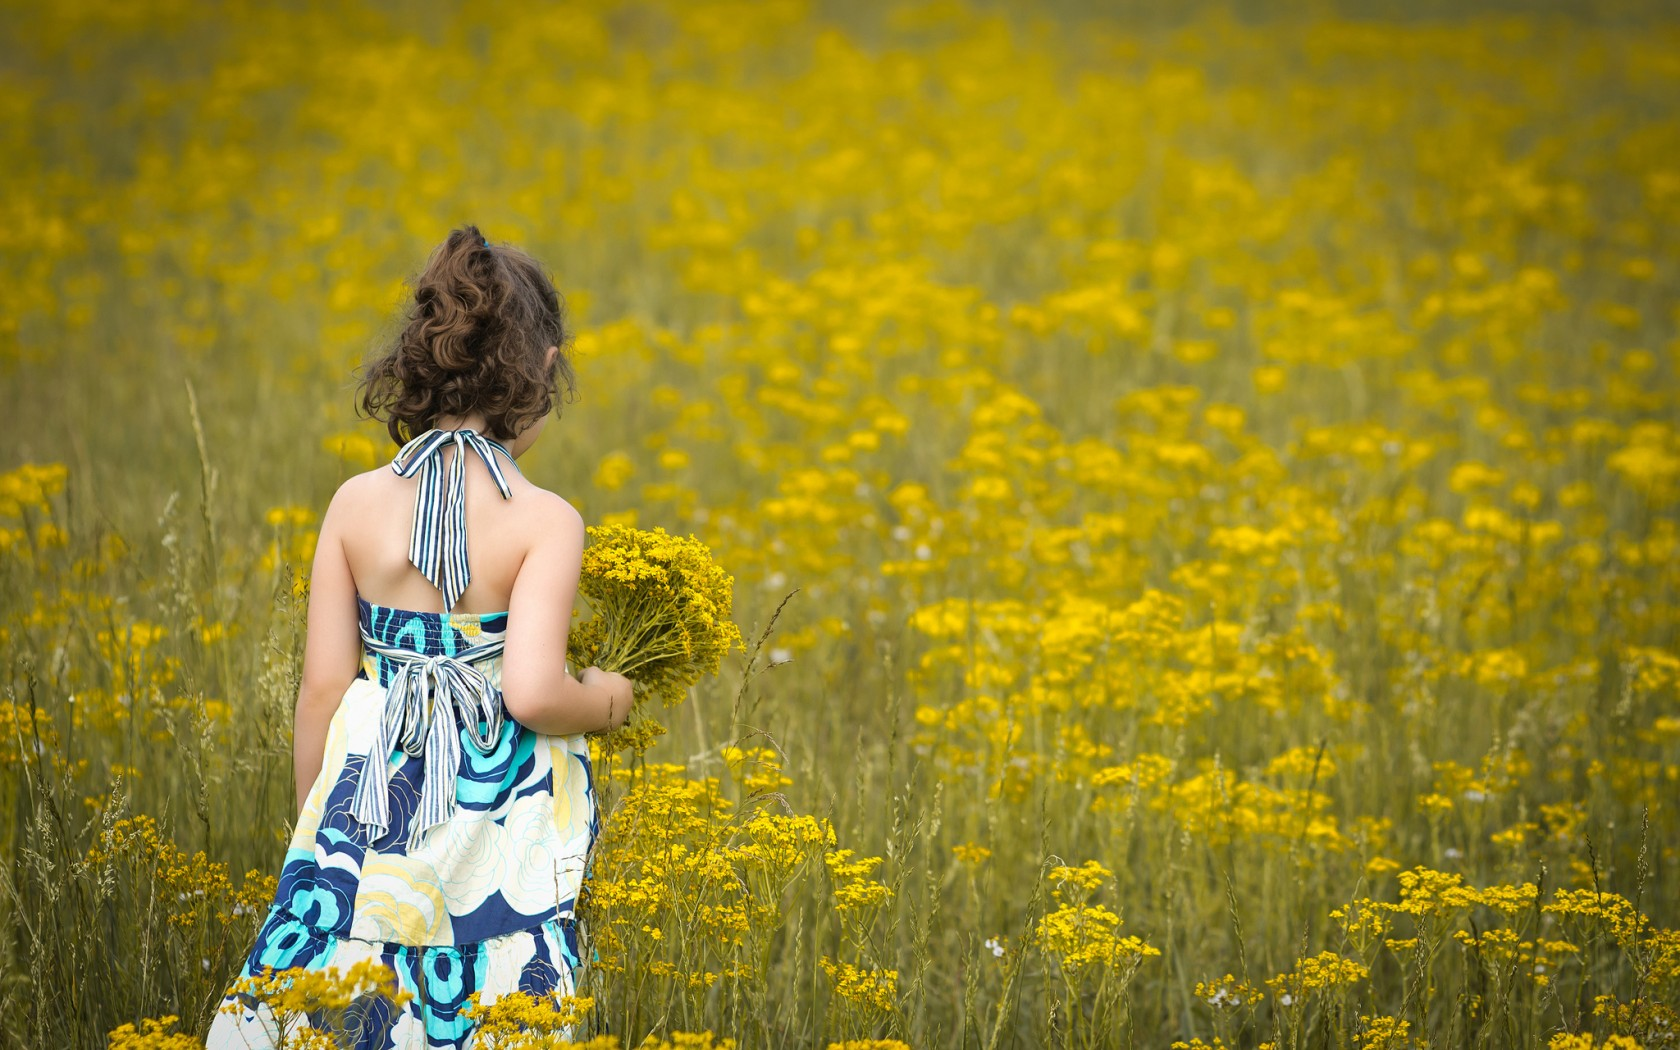 Sad Girl In Field Of Flowers Sad Girl In Yellow Flowers